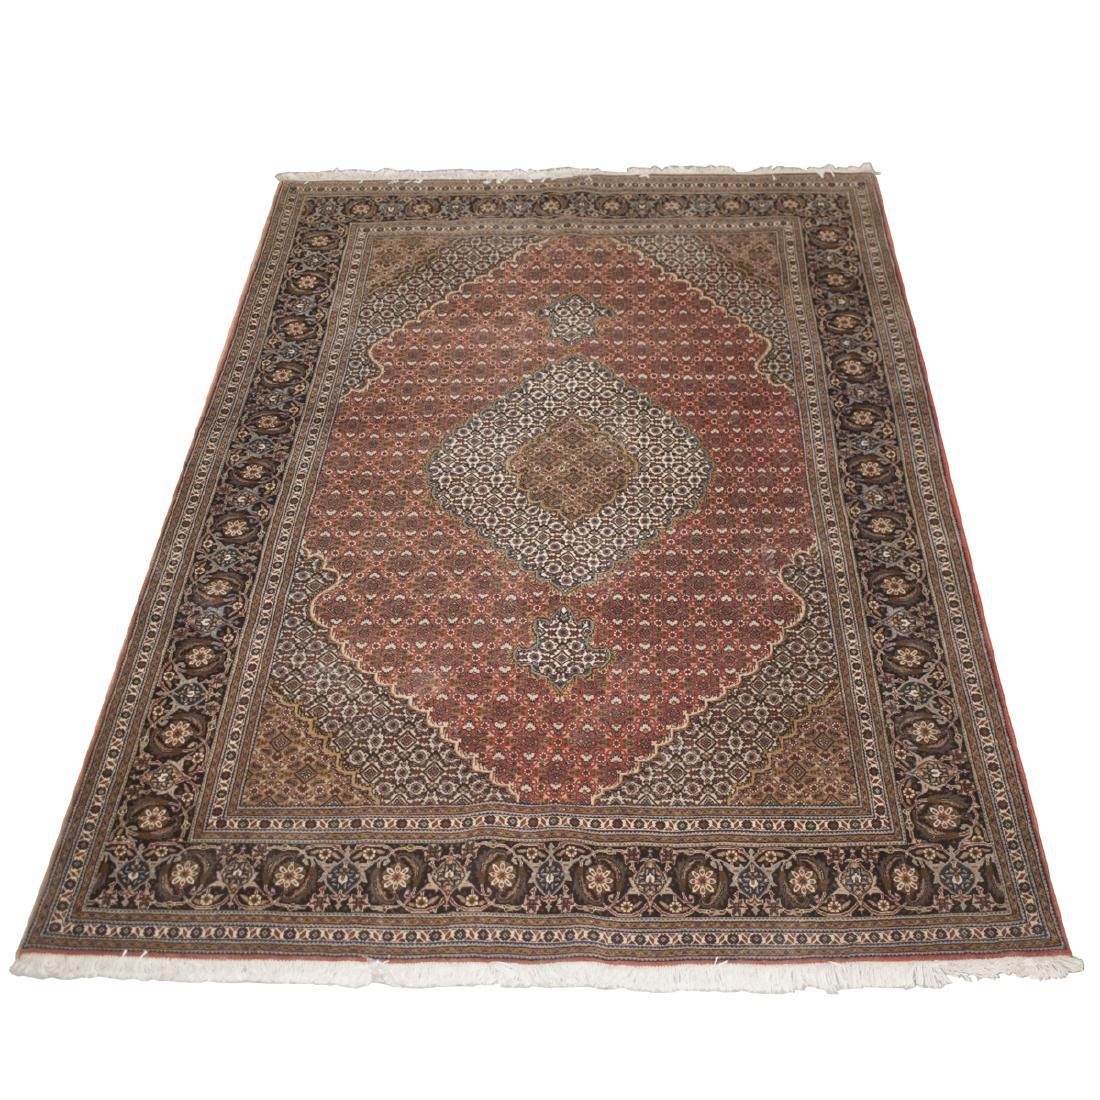 Large Persian Wool Rug